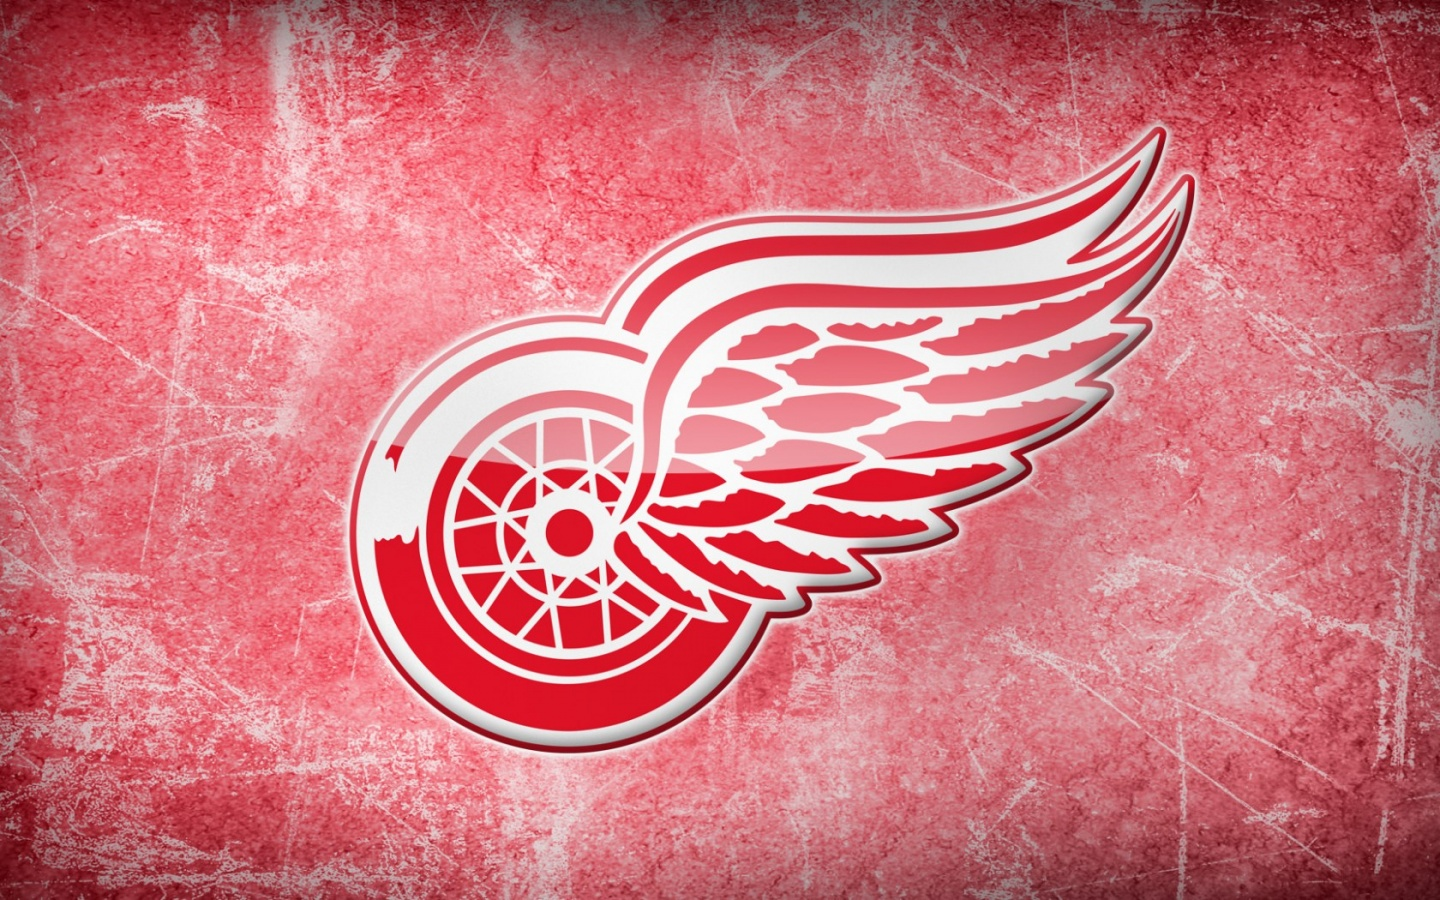 Detroit Red Wings Wallpapers   1440x900   610982 1440x900